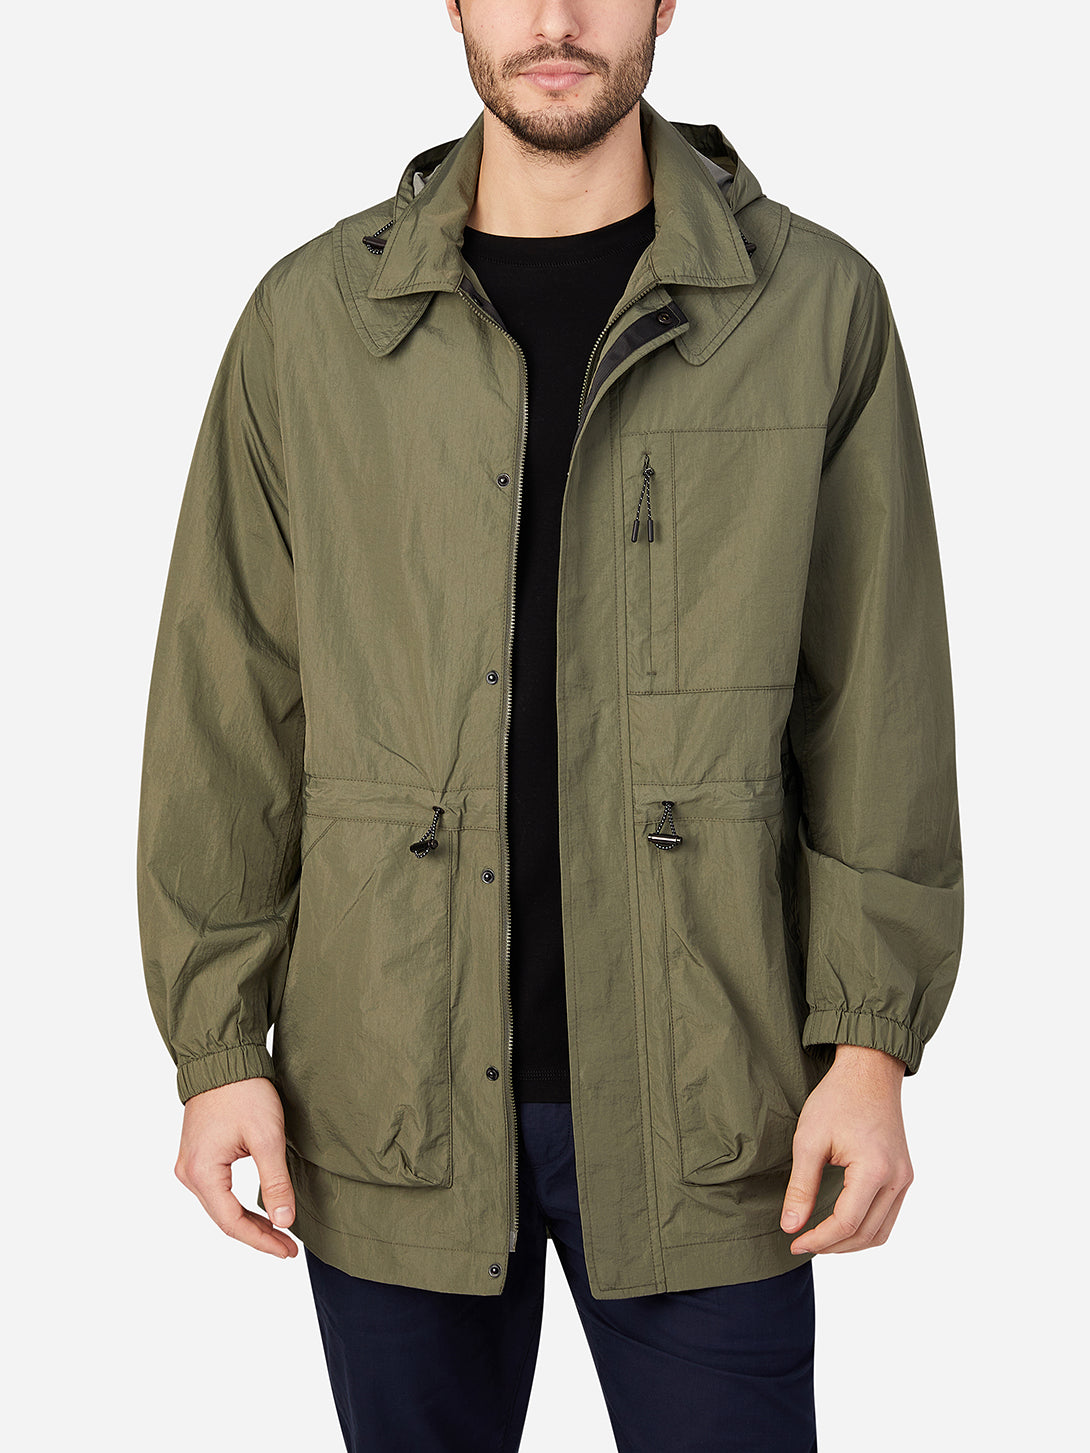 OLIVE GREEN jackets for men mariner packable parka ons clothing